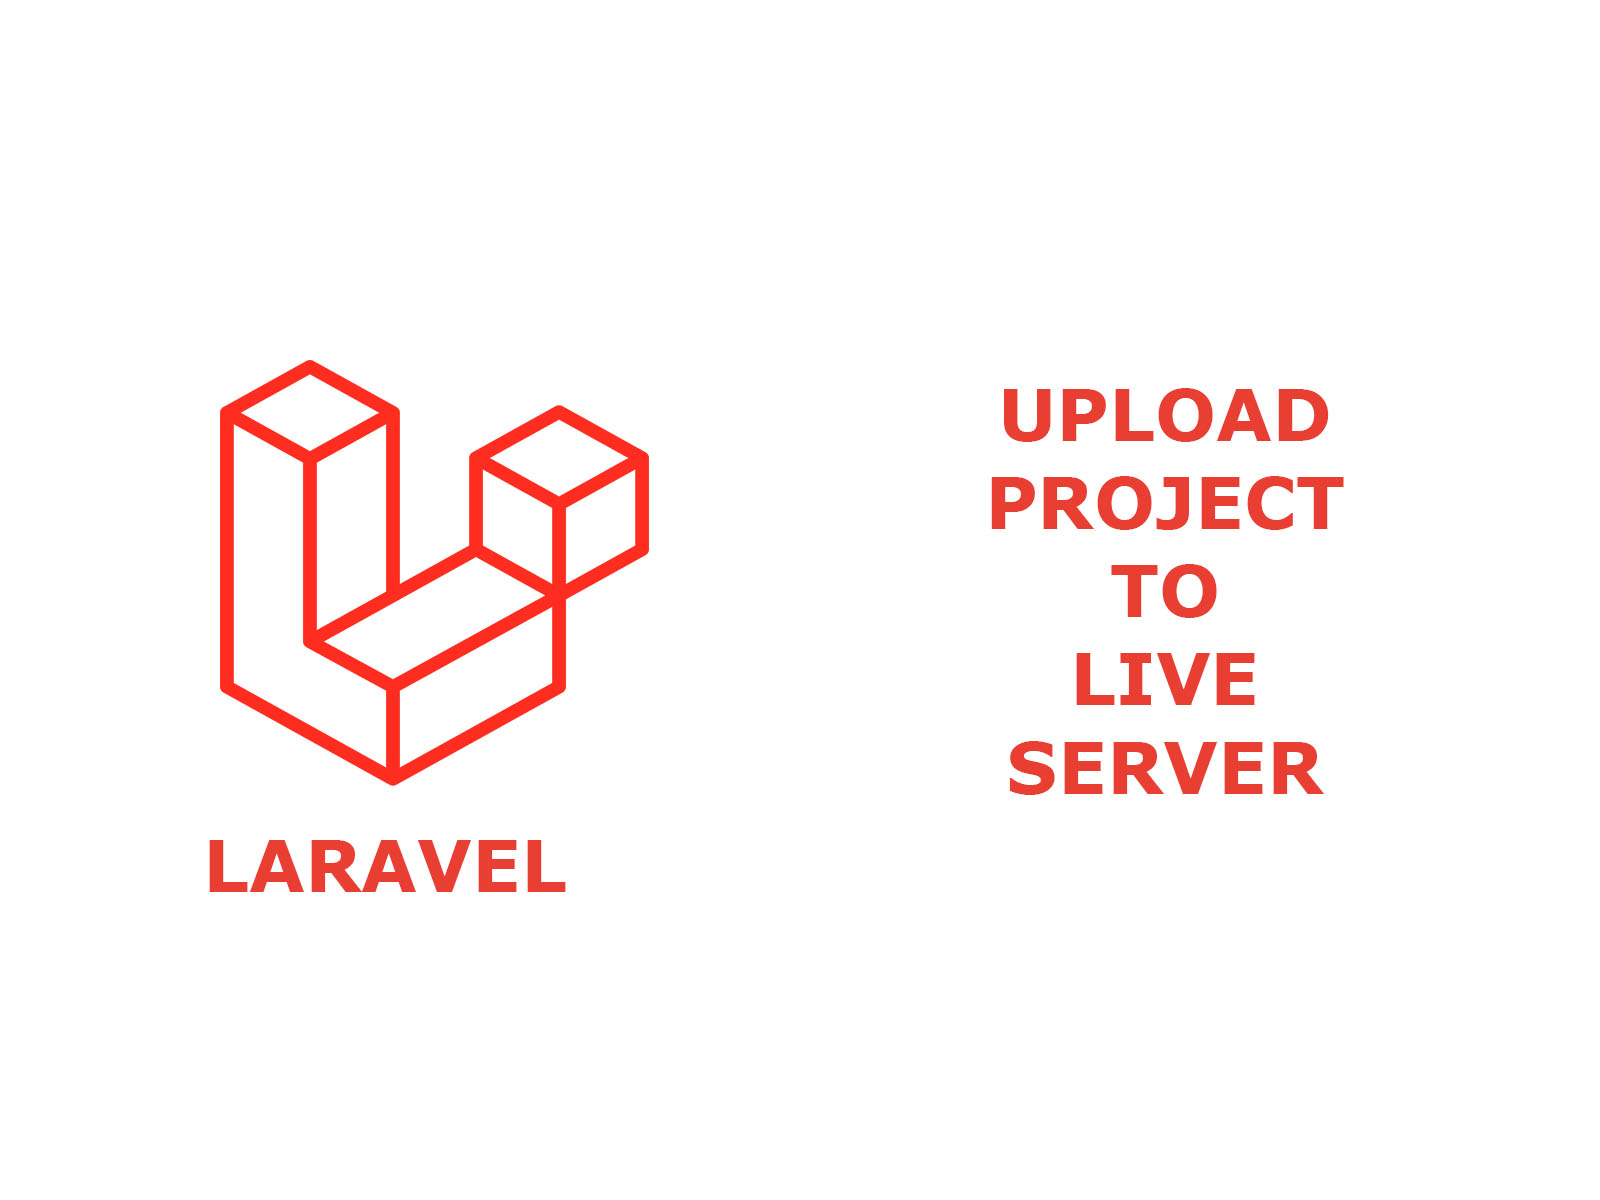 Laravel project upload to live server